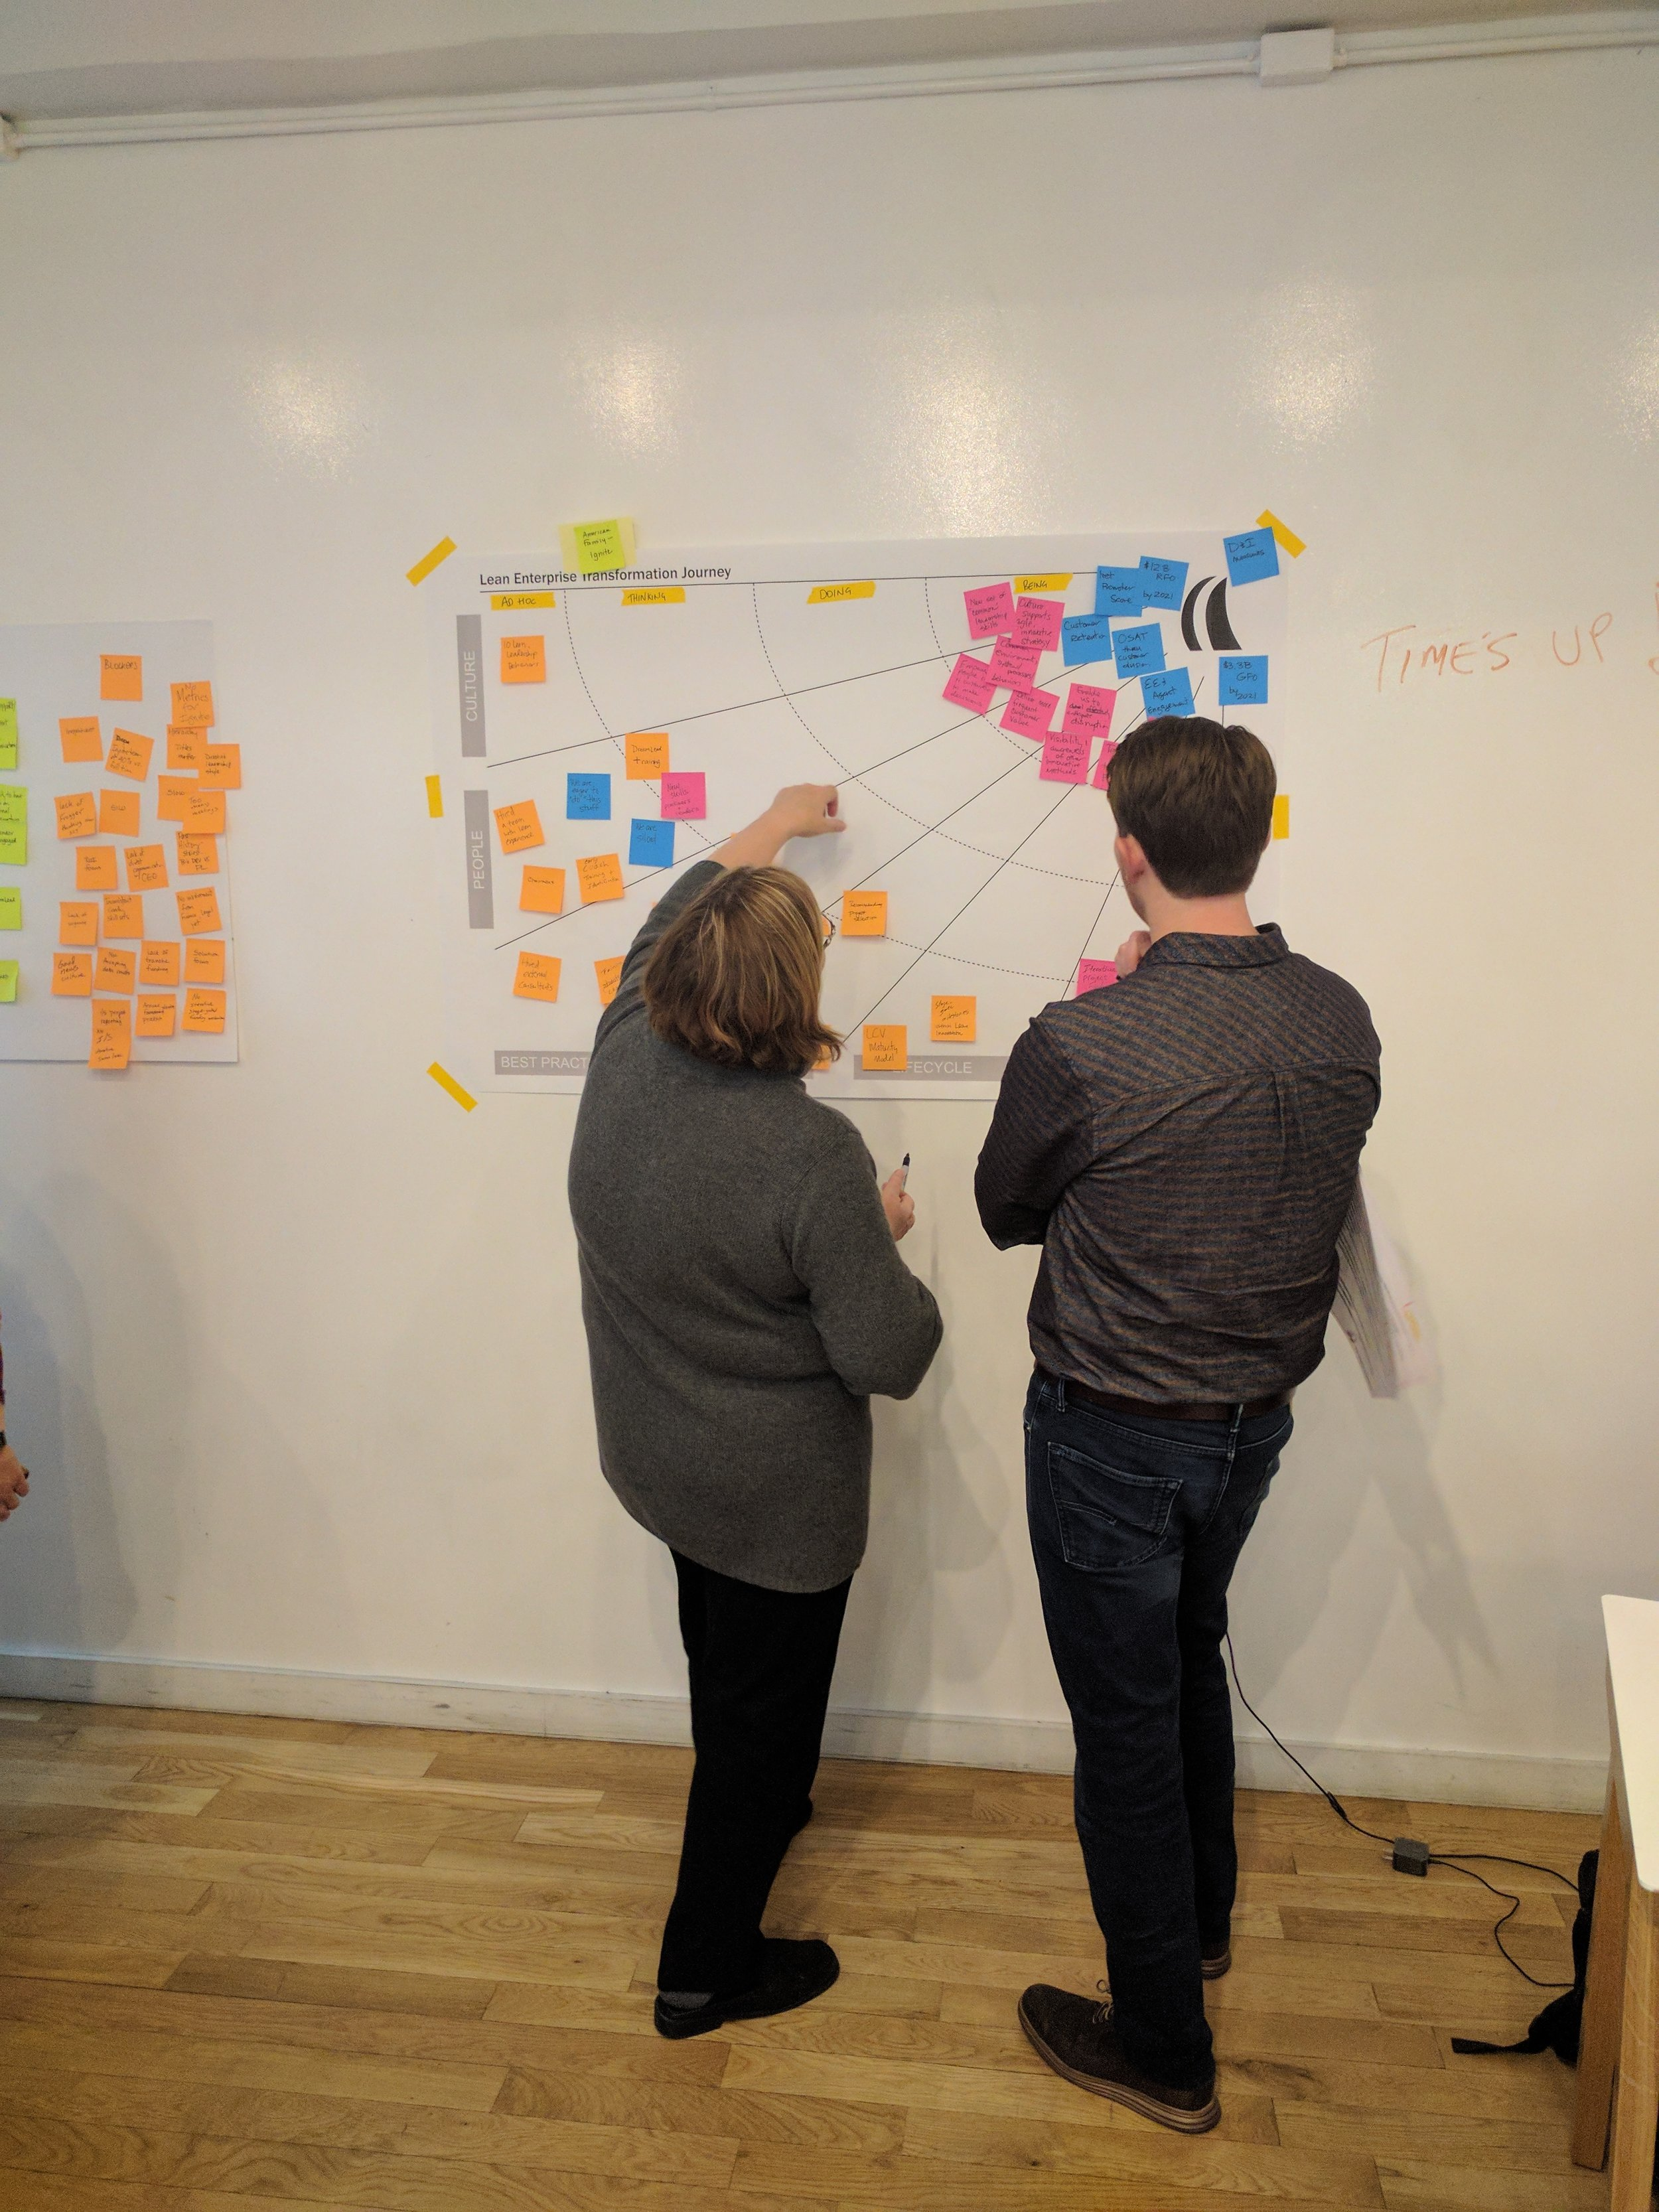 Mapping out a Transformation Journey using the Spinnaker canvas -